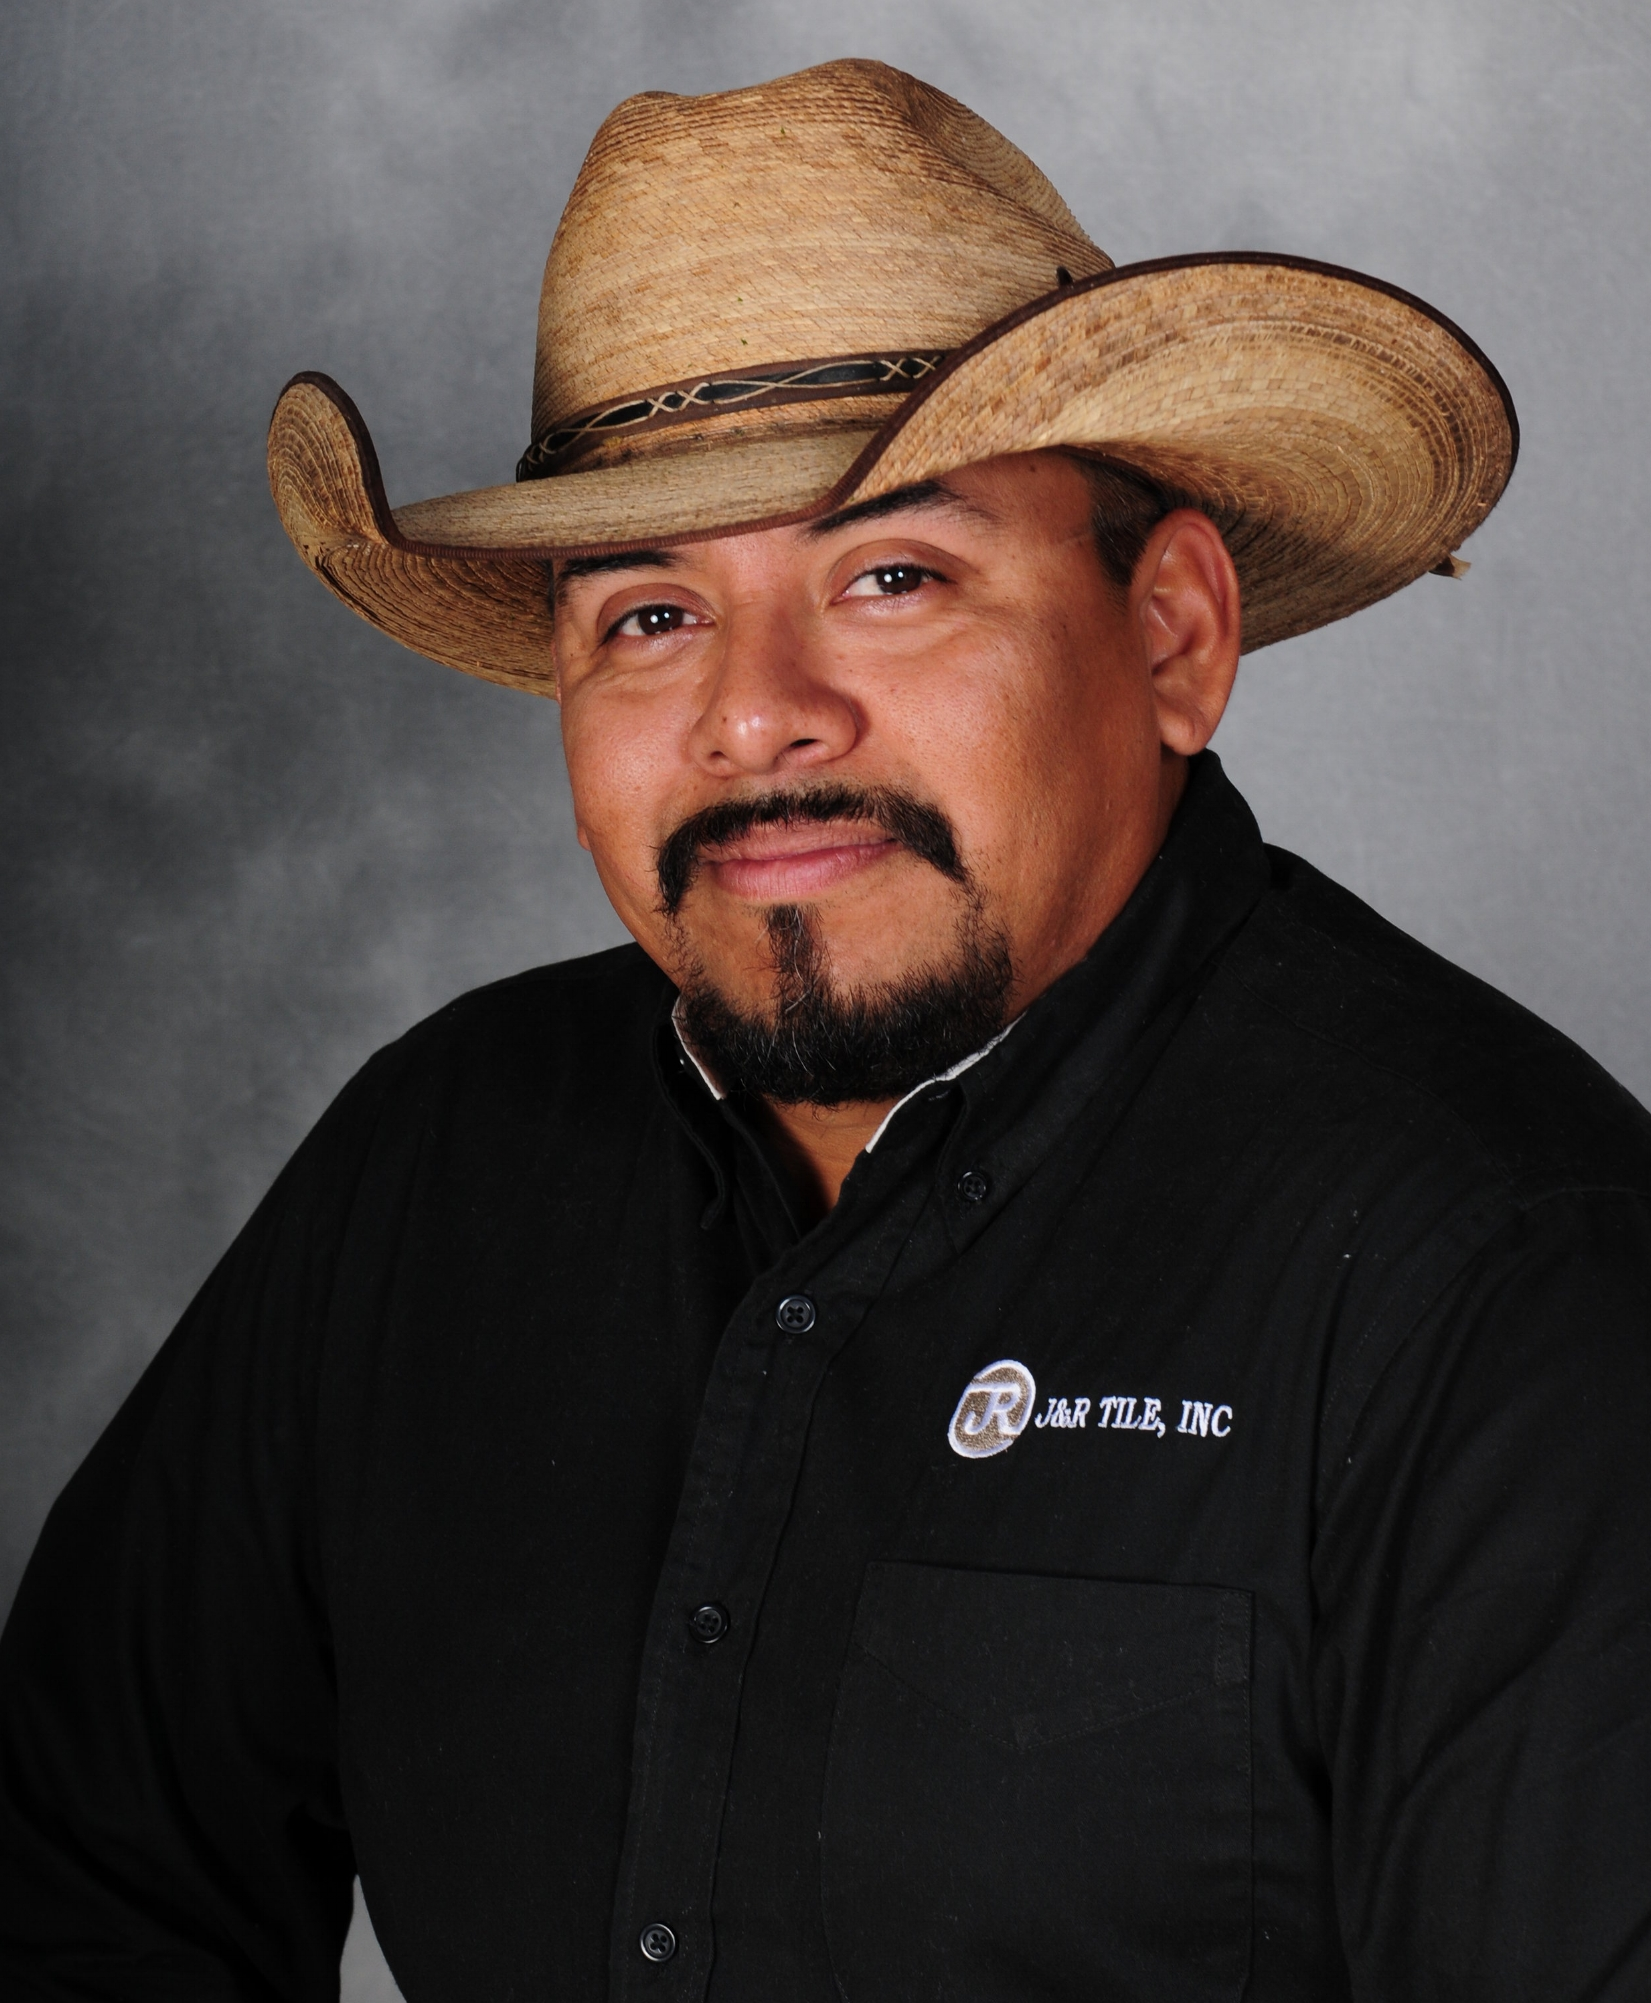 Triniti is one of the most educated and trained craftsmen in the industry and holds many certifications and accreditation leading to quality assurance written in specifications. Who better to run the show? He partners with estimating personnel to ensure installations are to Tile Council of North America Standards, and helps Erin educate architects on correct specifications with hands-on demonstrations. He is also a Regional Evaluator for the Ceramic Tile Education Foundation, so more installers can be certified in Texas! Triniti is an avid Rodeo Man, trail rider and Team Roper. Him and his lovely wife Blanca have horses and trail ride together in his leisure time.   Education:   Certified Tile Installer/Advanced Certified Installer (Thin Porcelain Tile, Large Format Tile, Mud Floors, Mud Walls, Substrate Preparation & Shower Receptors)/Stonepeak Plane F.A.C.T. Certification/Ardex Academy Moisture Remediation/Dekton Certified Installer/Wedi Pro Installer/OHSA 10 Certified/Schluter Shower System Certified/Heated Underlayment Certification